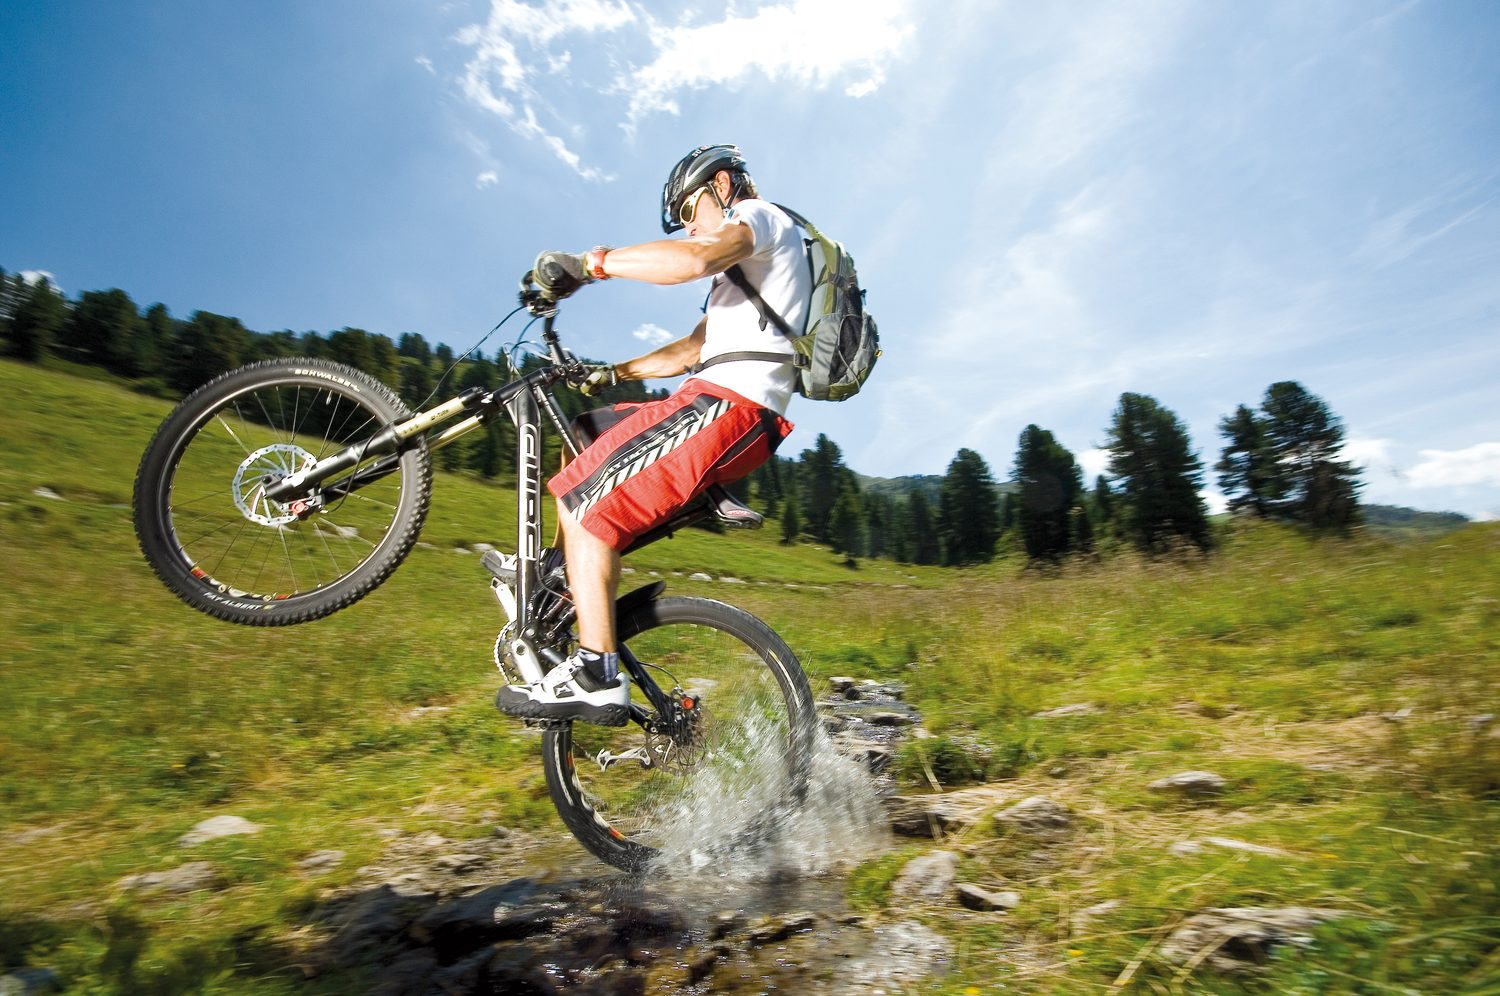 ZA Mountainbike Action